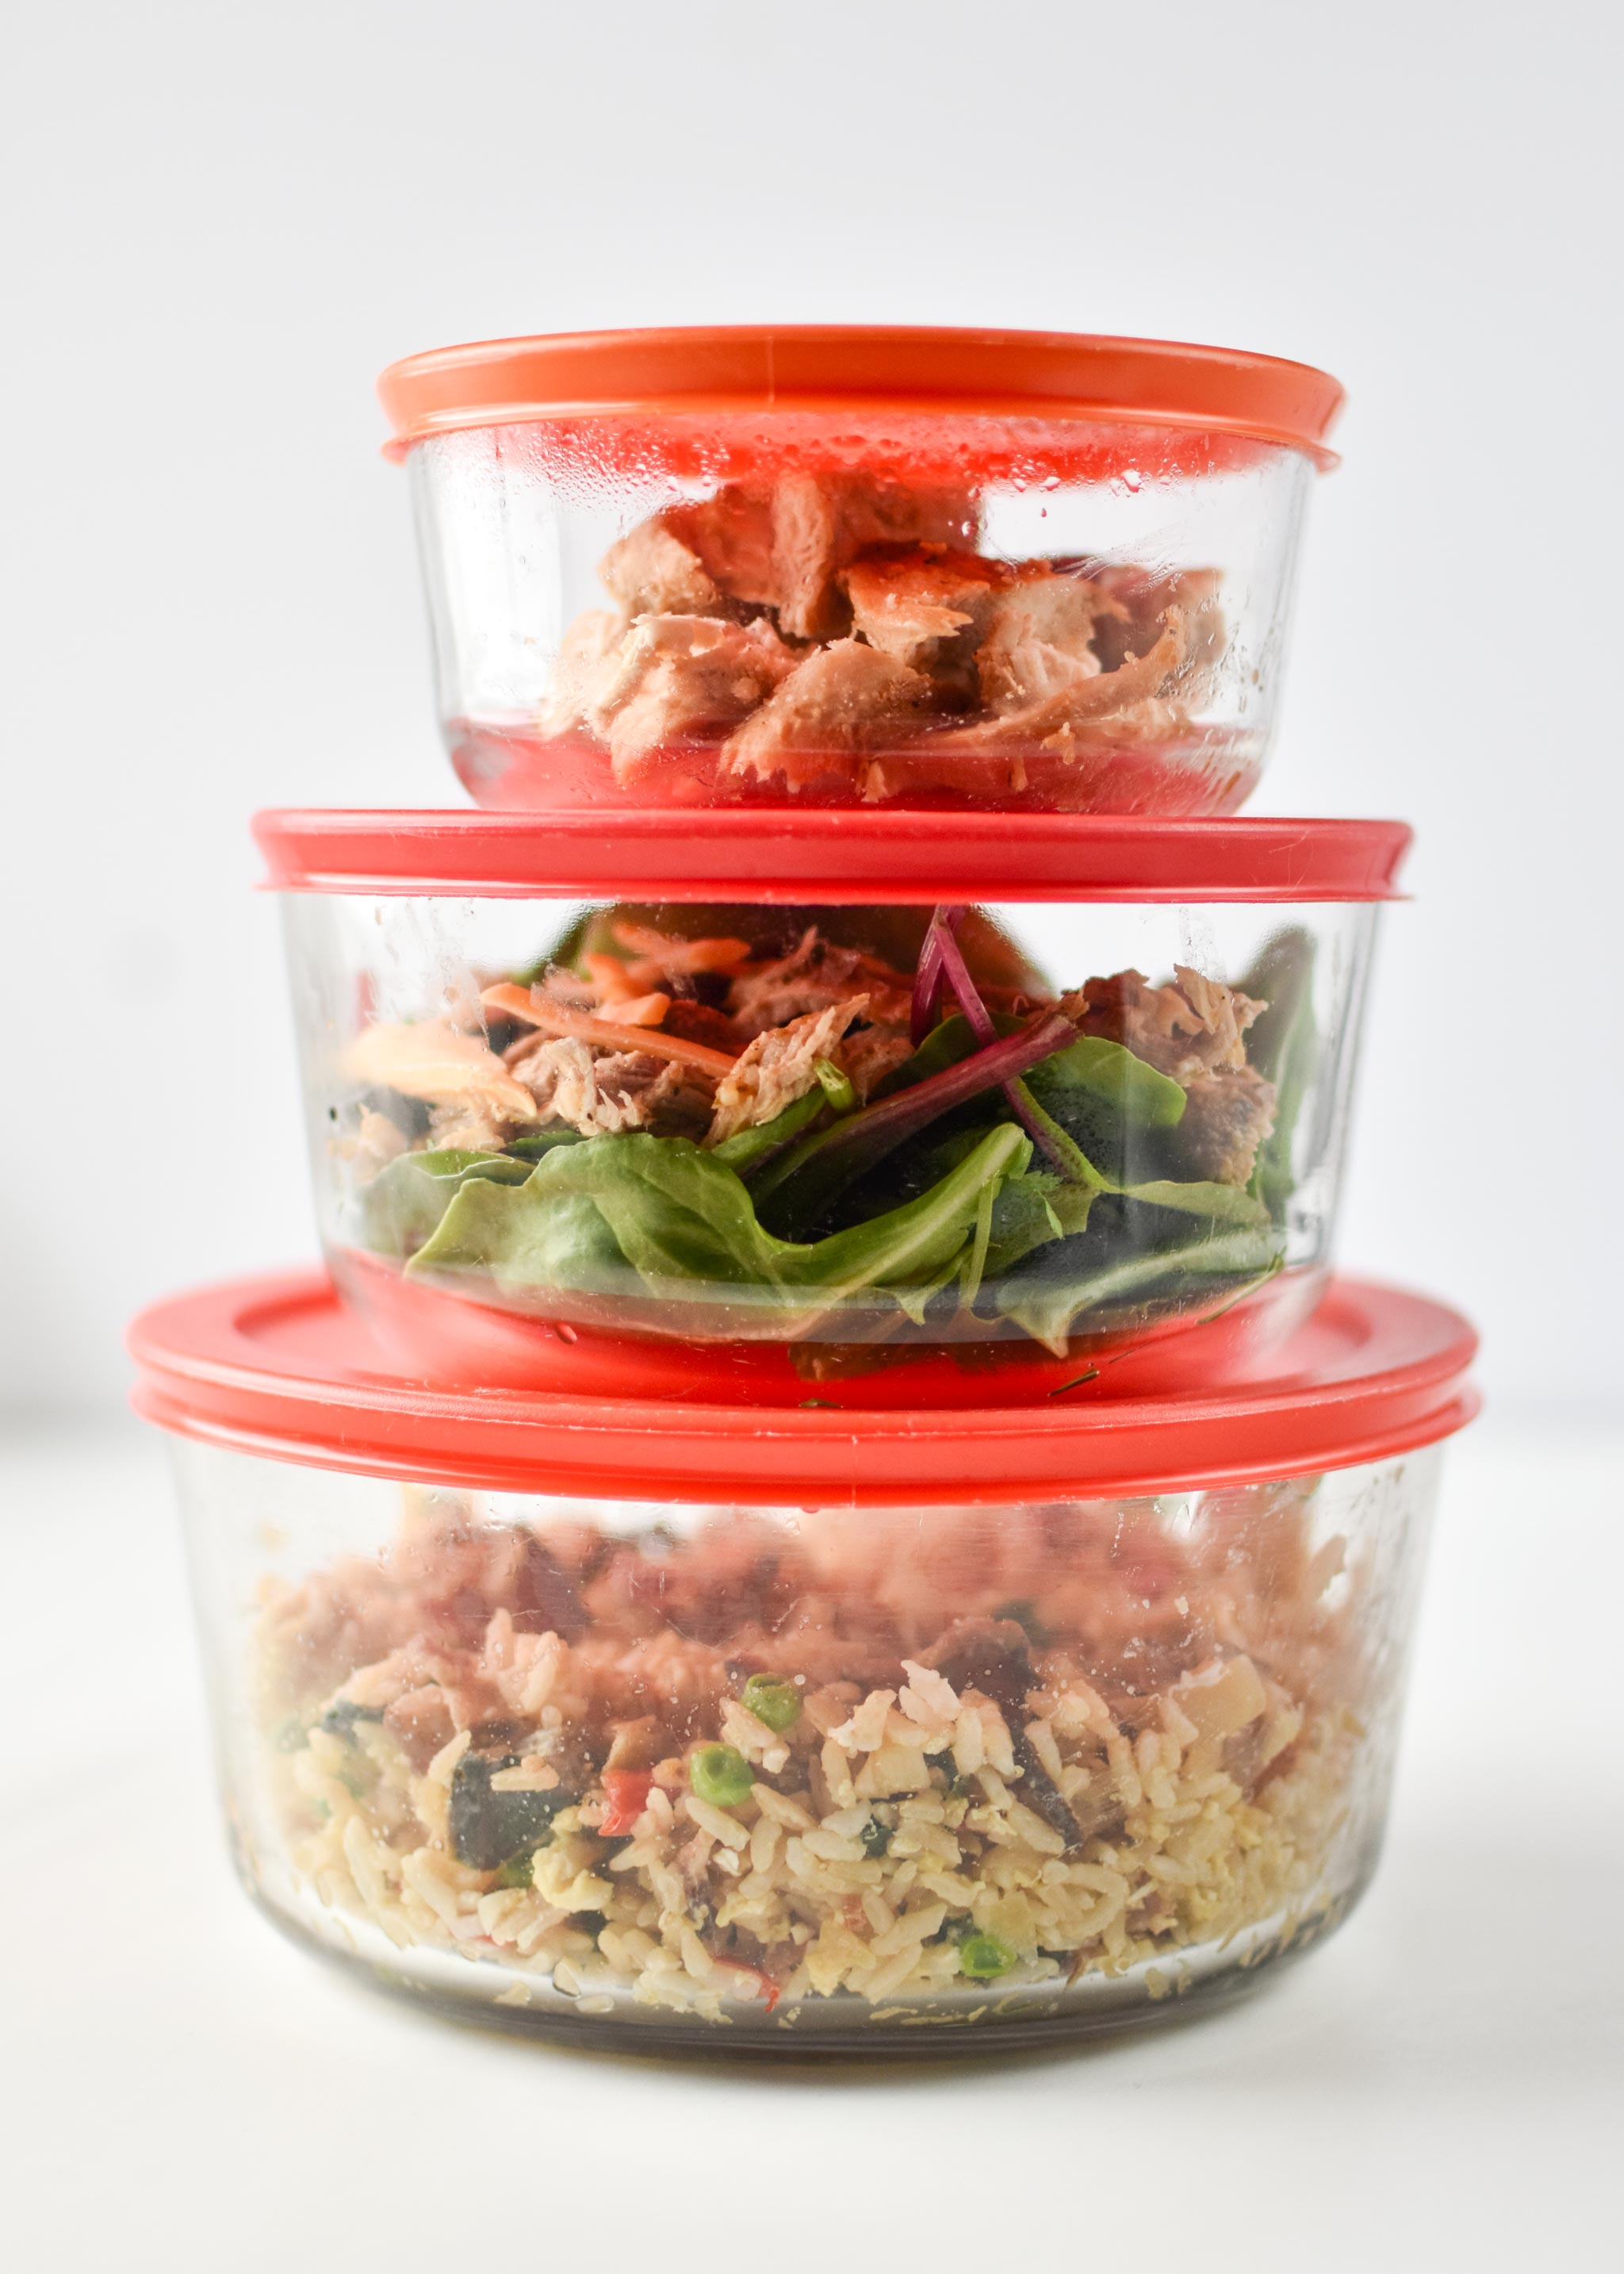 Three glass Pyrex containers with leftovers from my fridge - 7 cup, 4 cup, and 2 cup size.